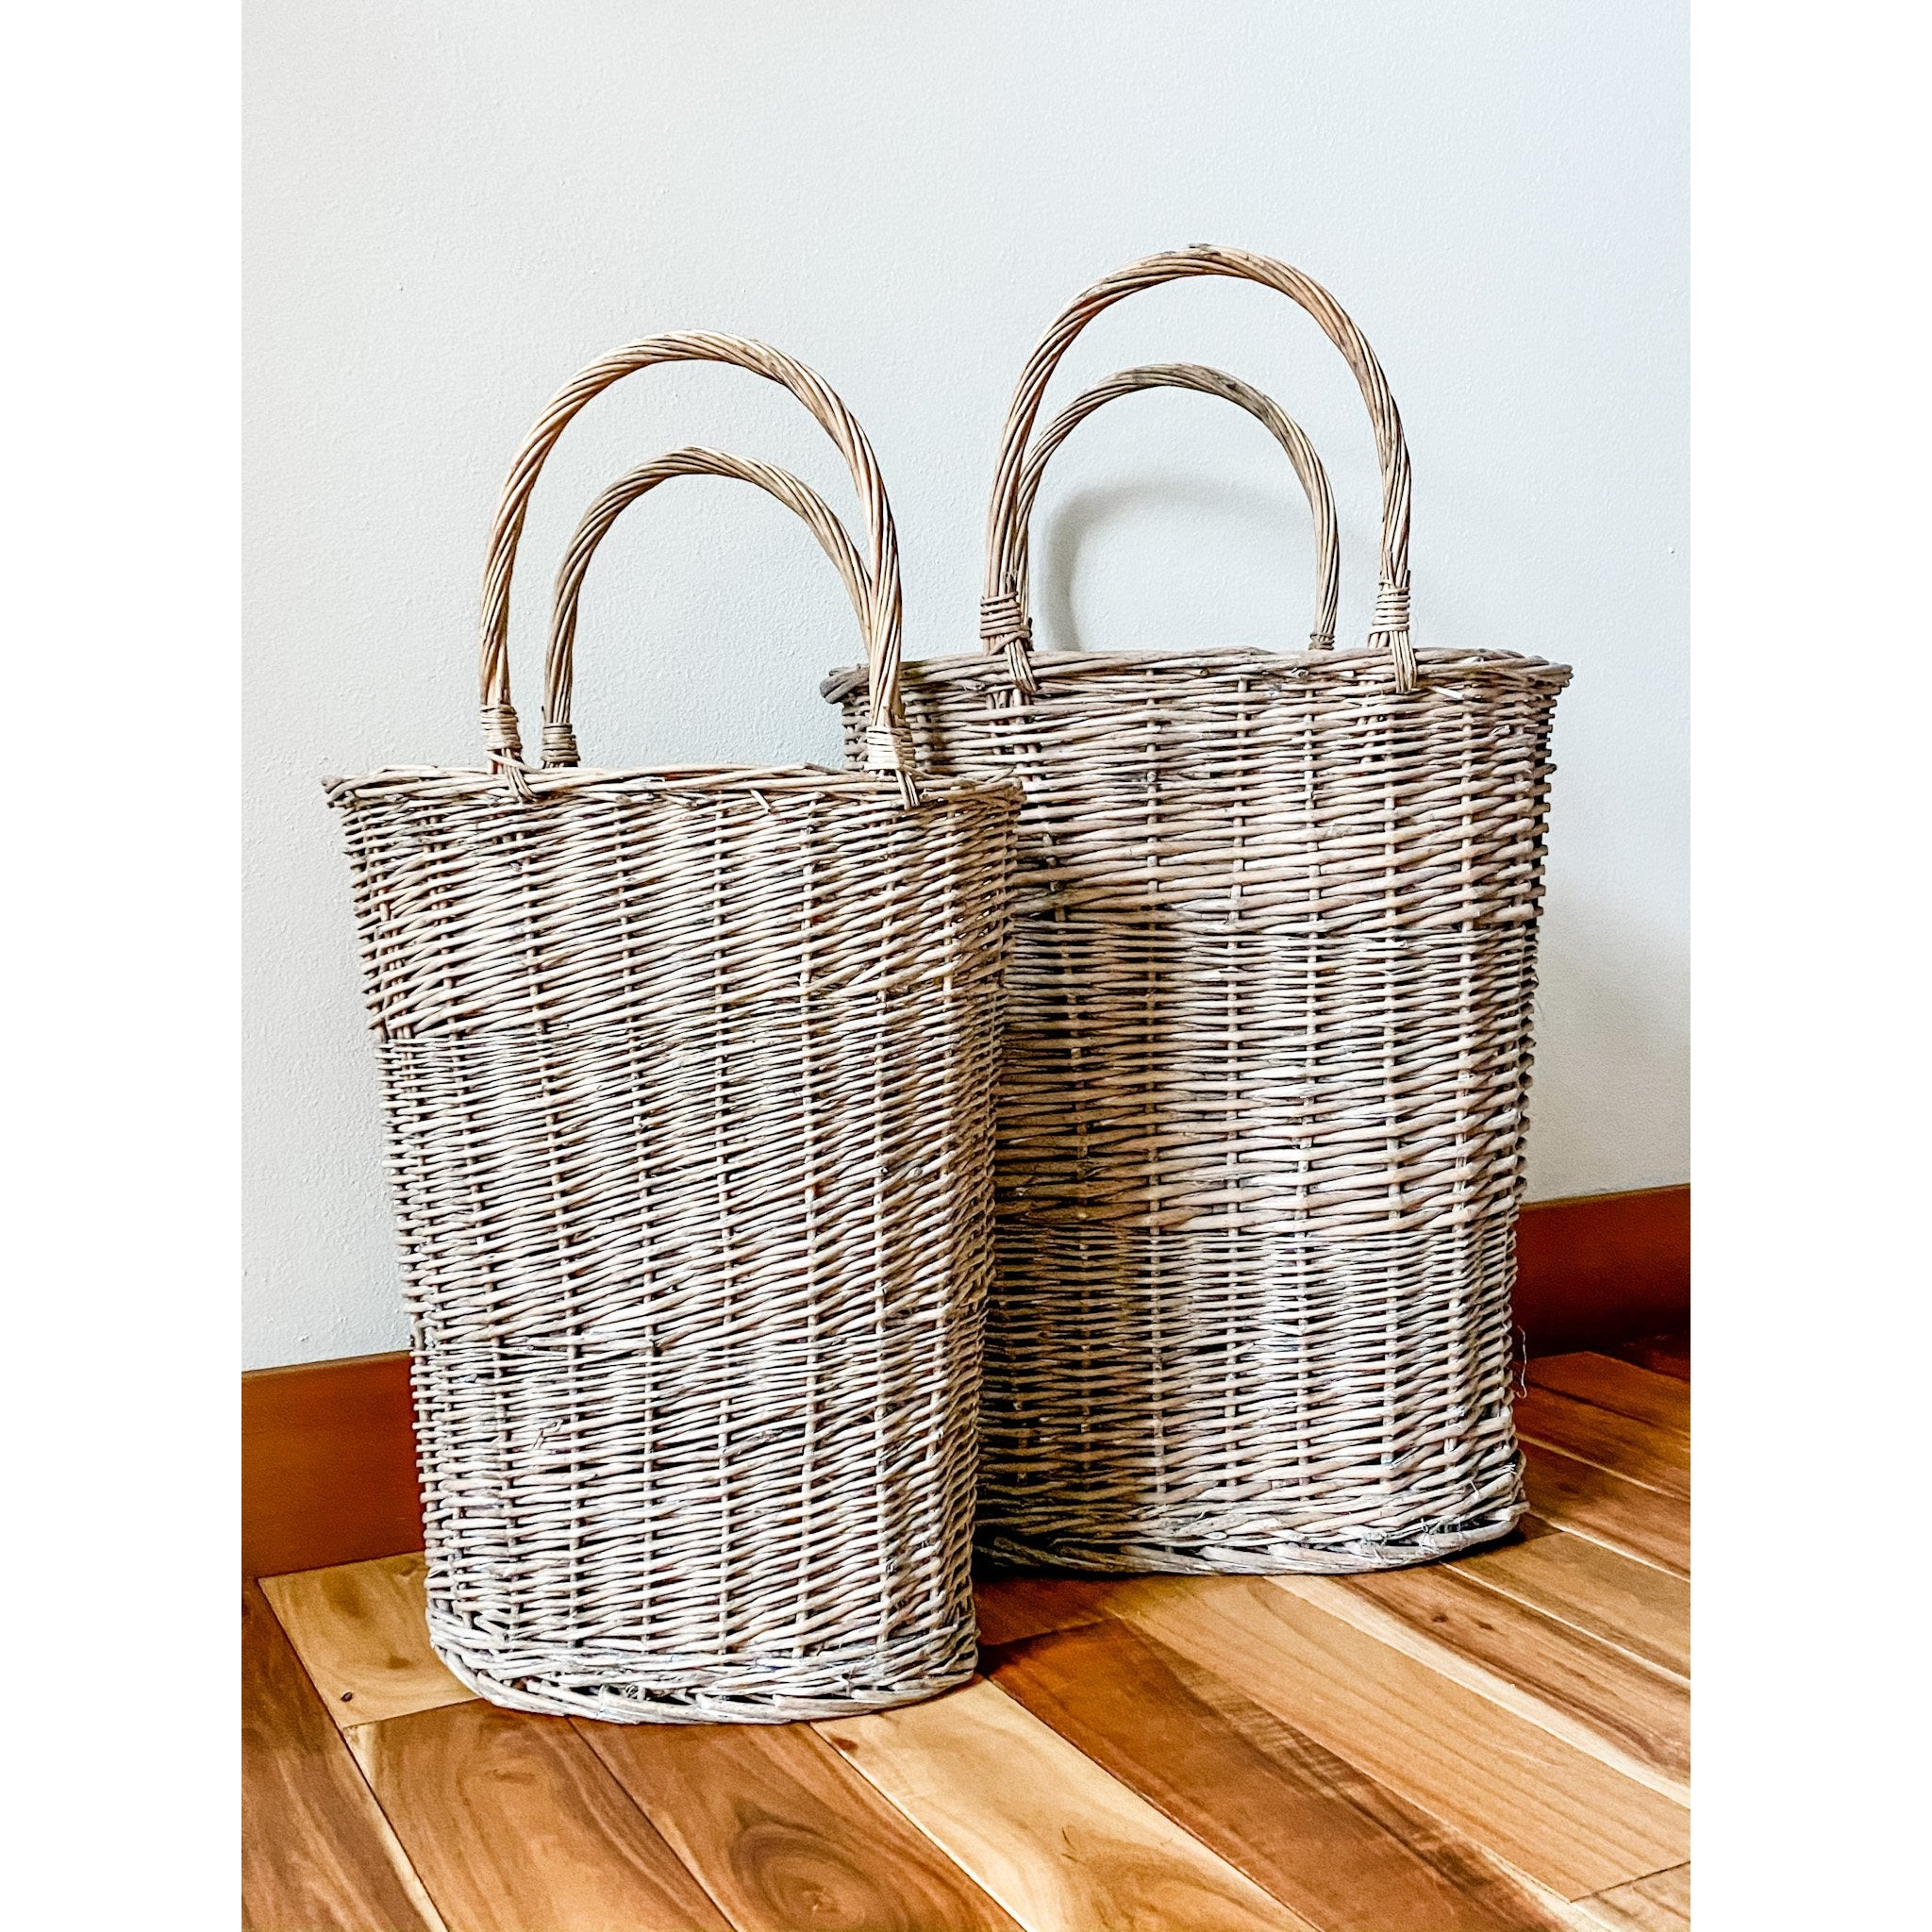 Tall oval wicker baskets - Size options